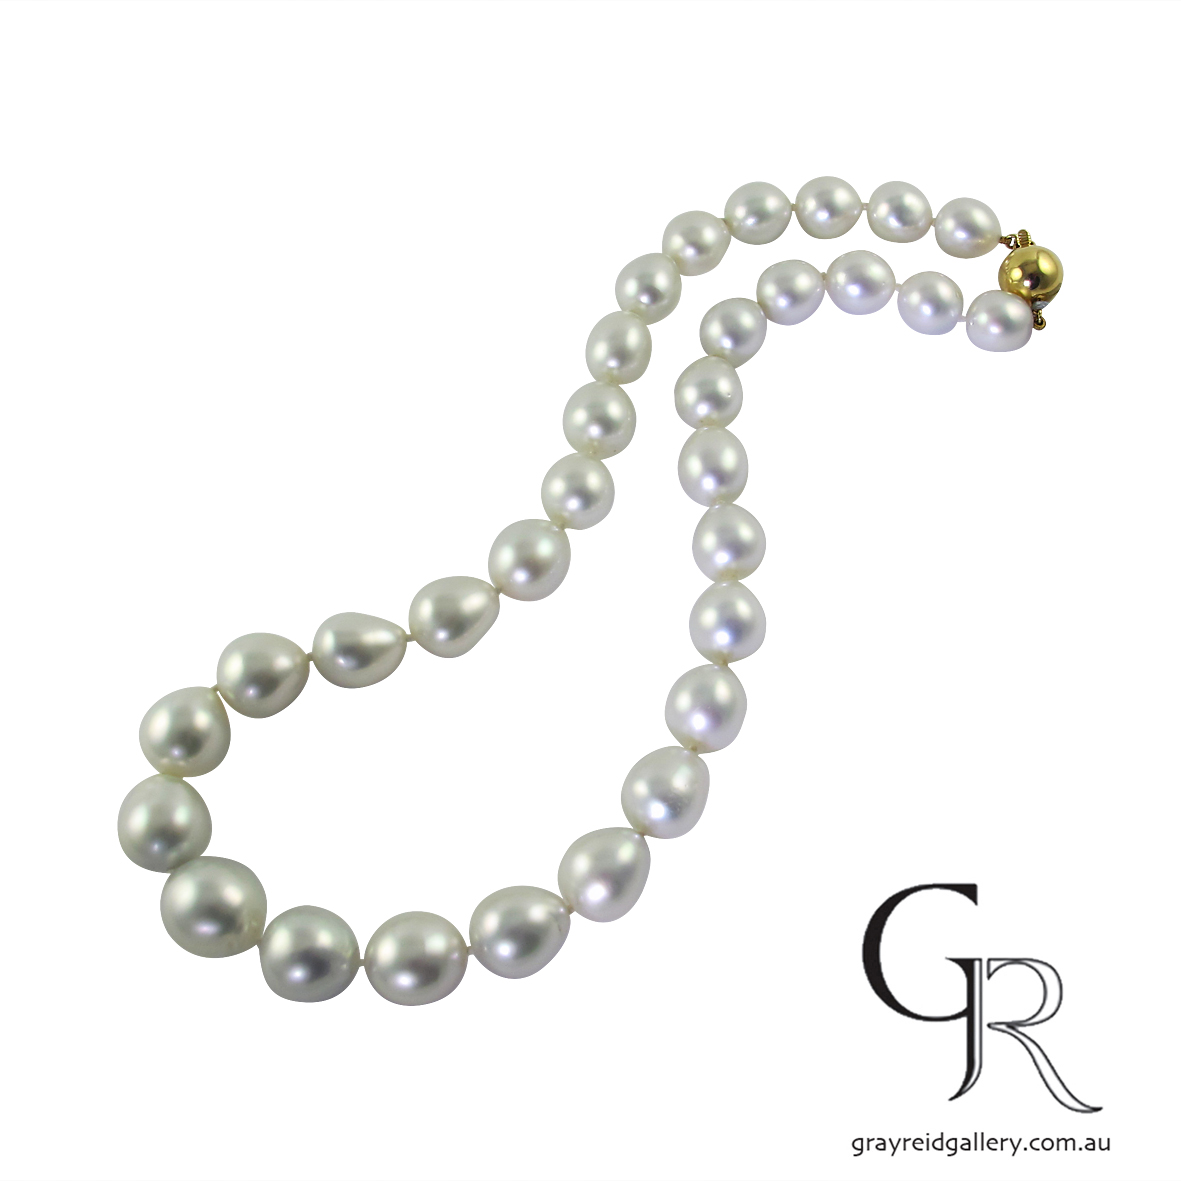 broome pearls melbourne Gray Reid Gallery.jpg